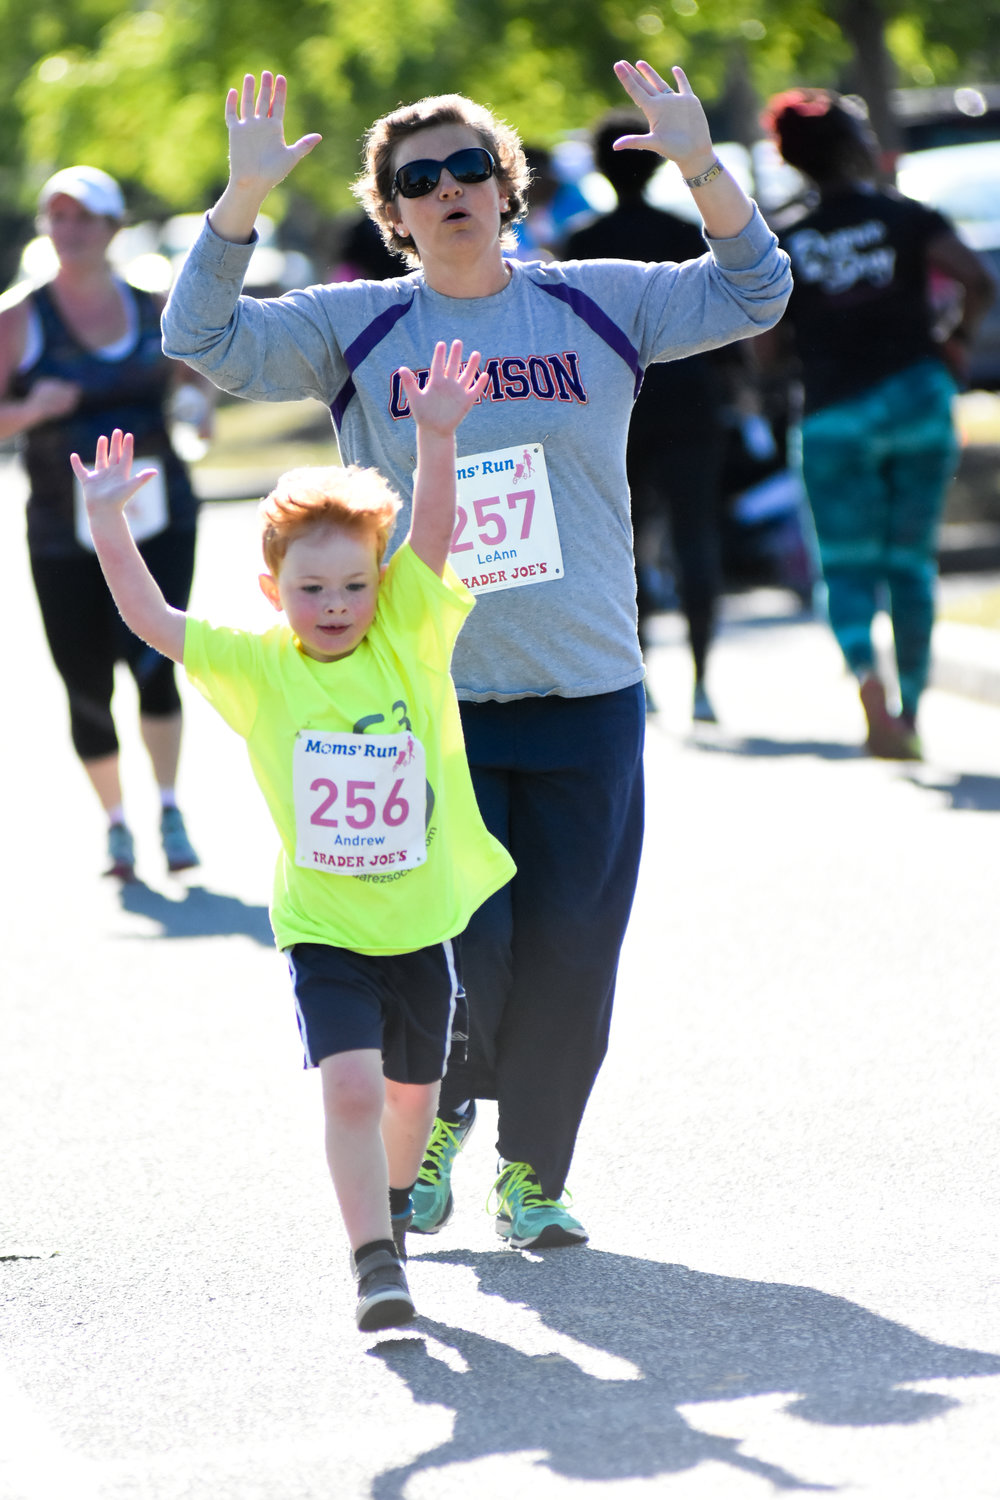 A participant and child in the 2016 Moms' Run 5K and Family Fun Day on Daniel Island.